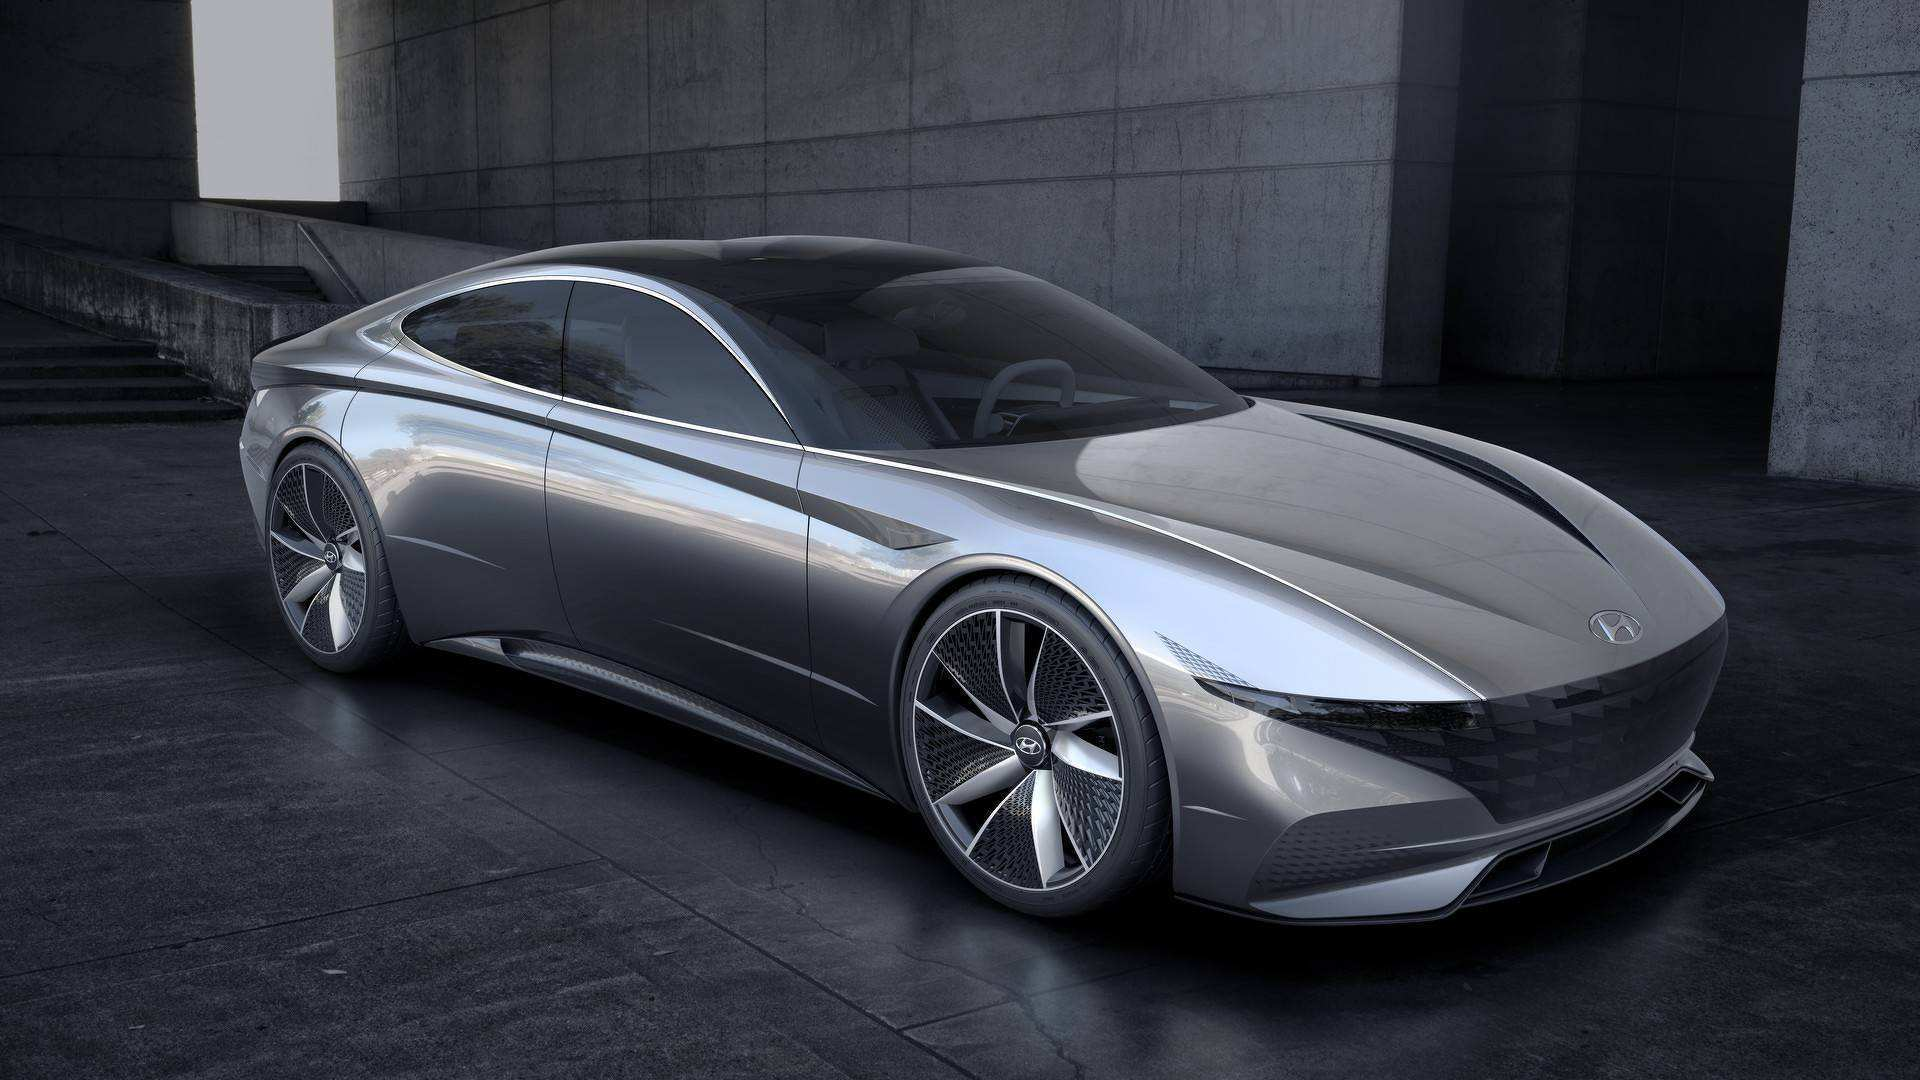 49 All New Hyundai Vision 2020 Wallpaper